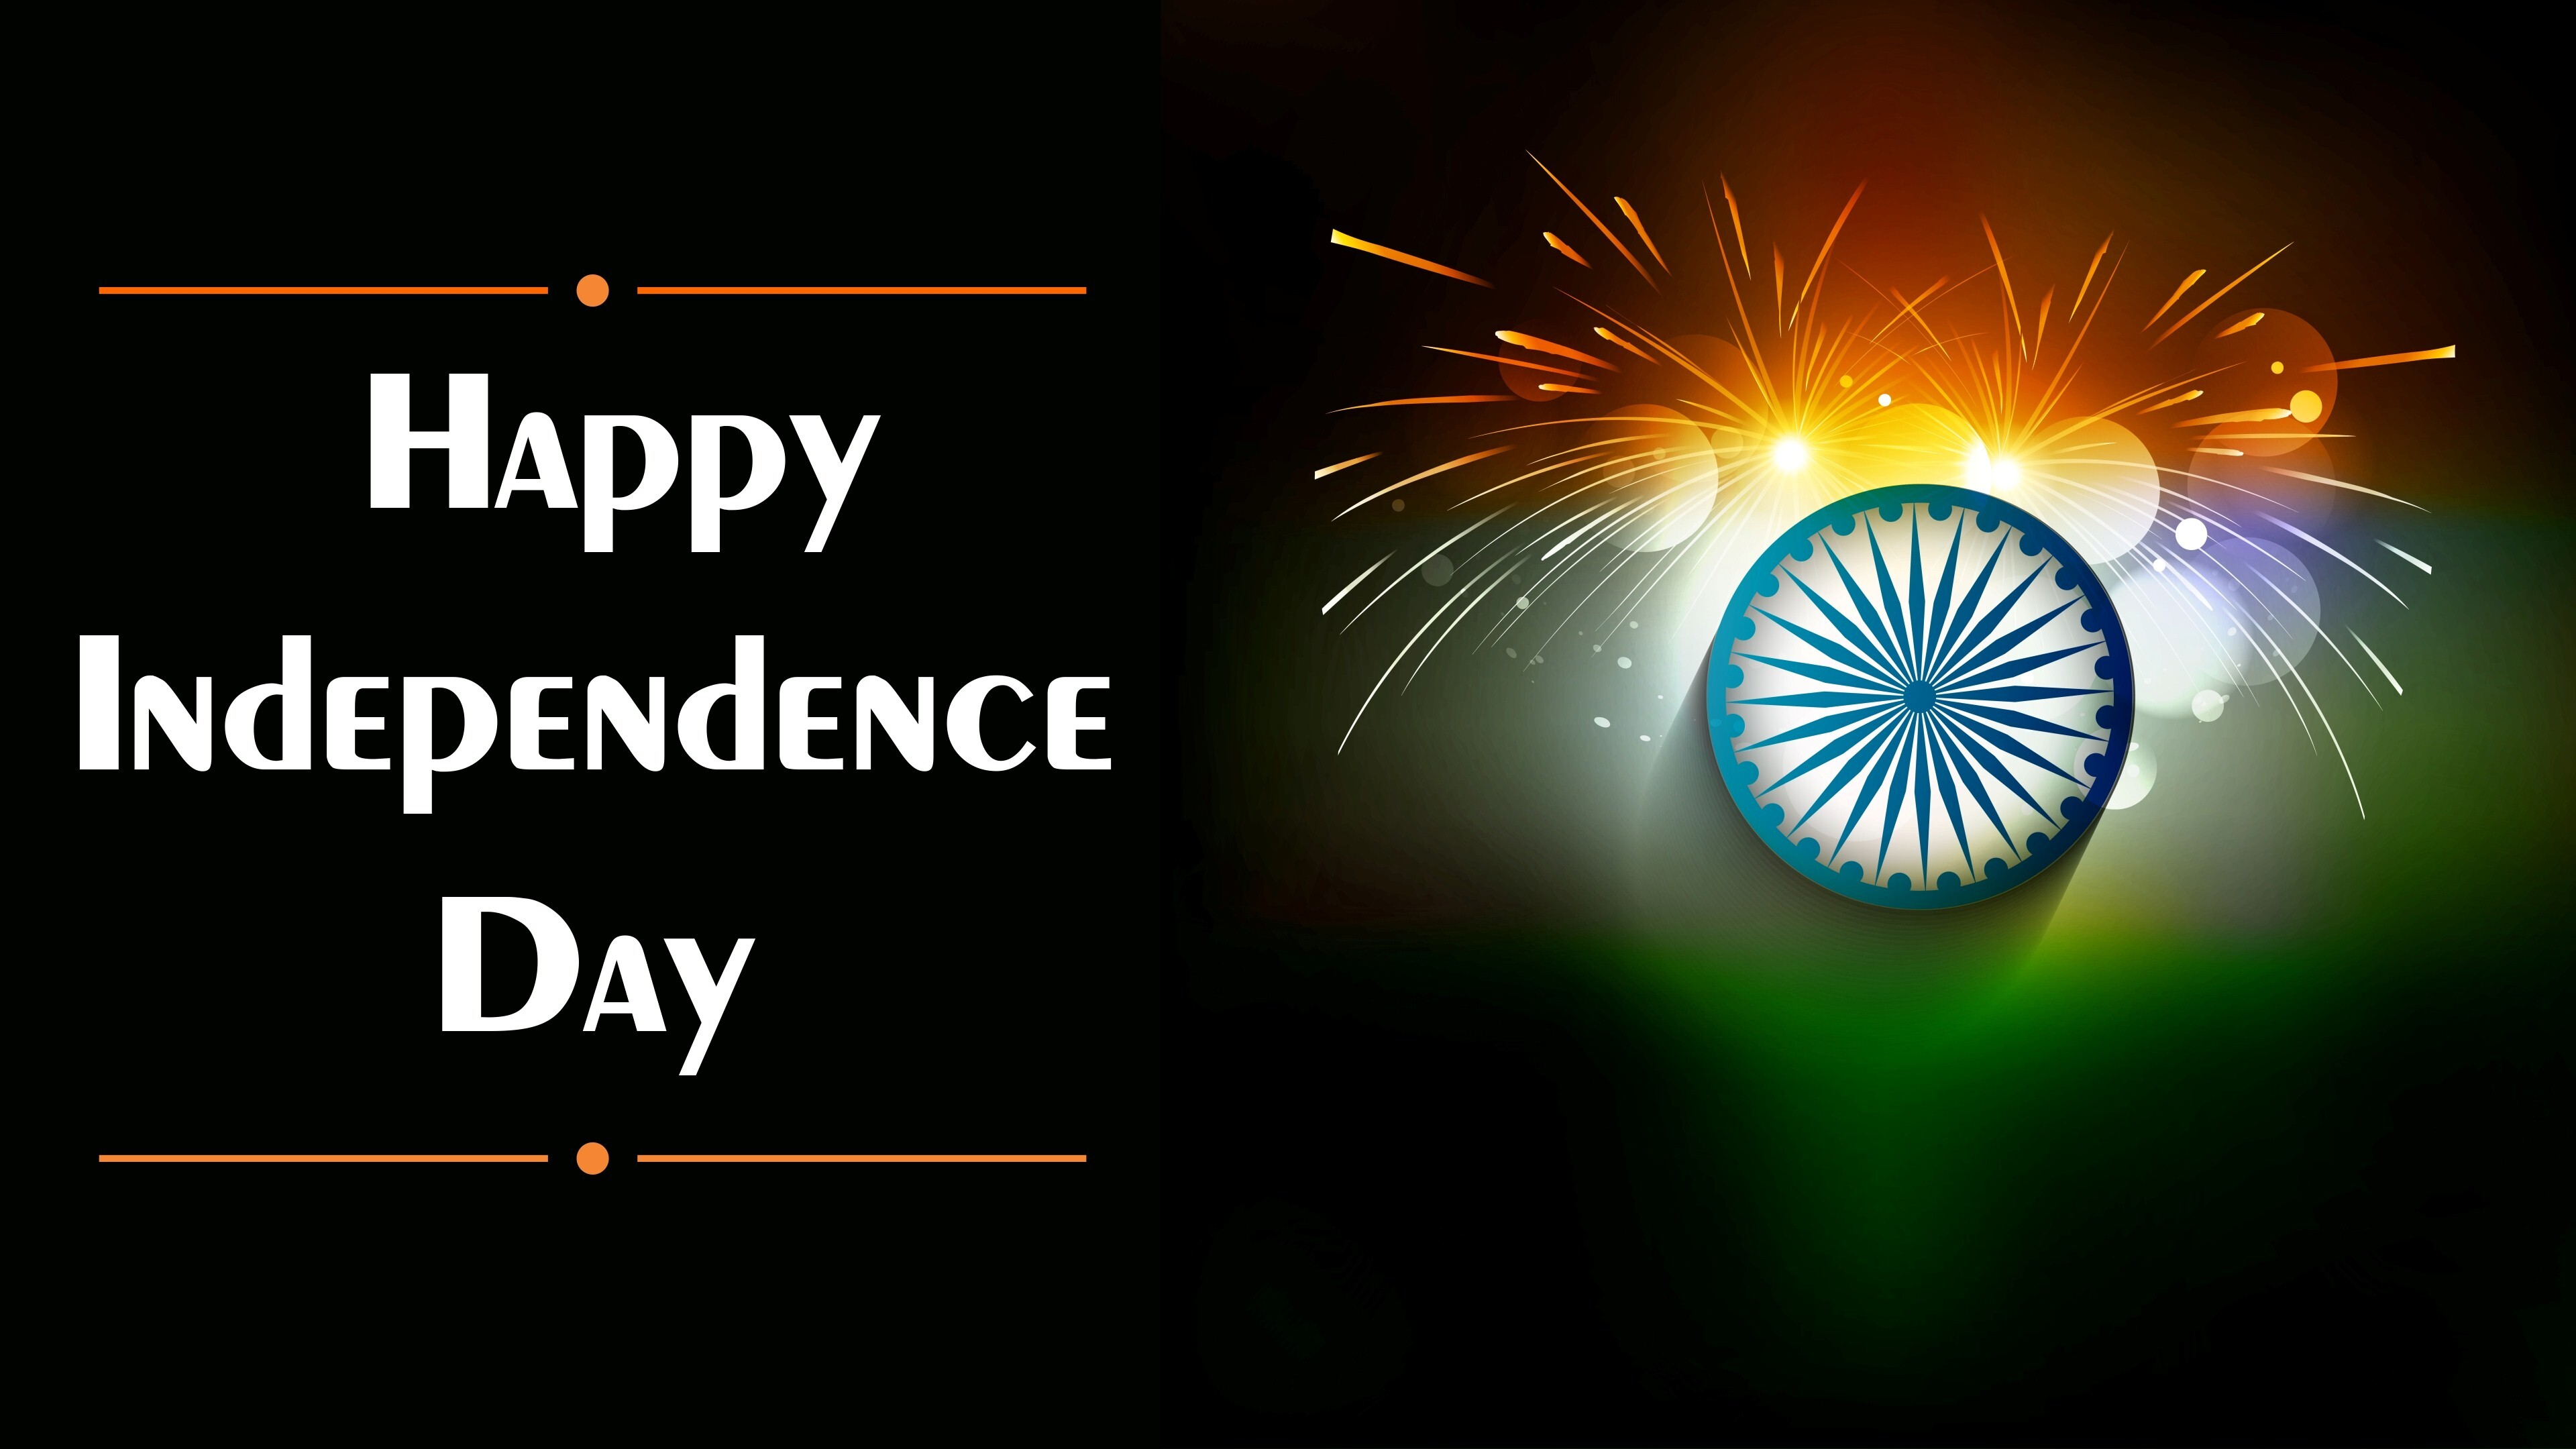 Happy Independence Day Of India Hd Desktop Wallpaper Background Hd